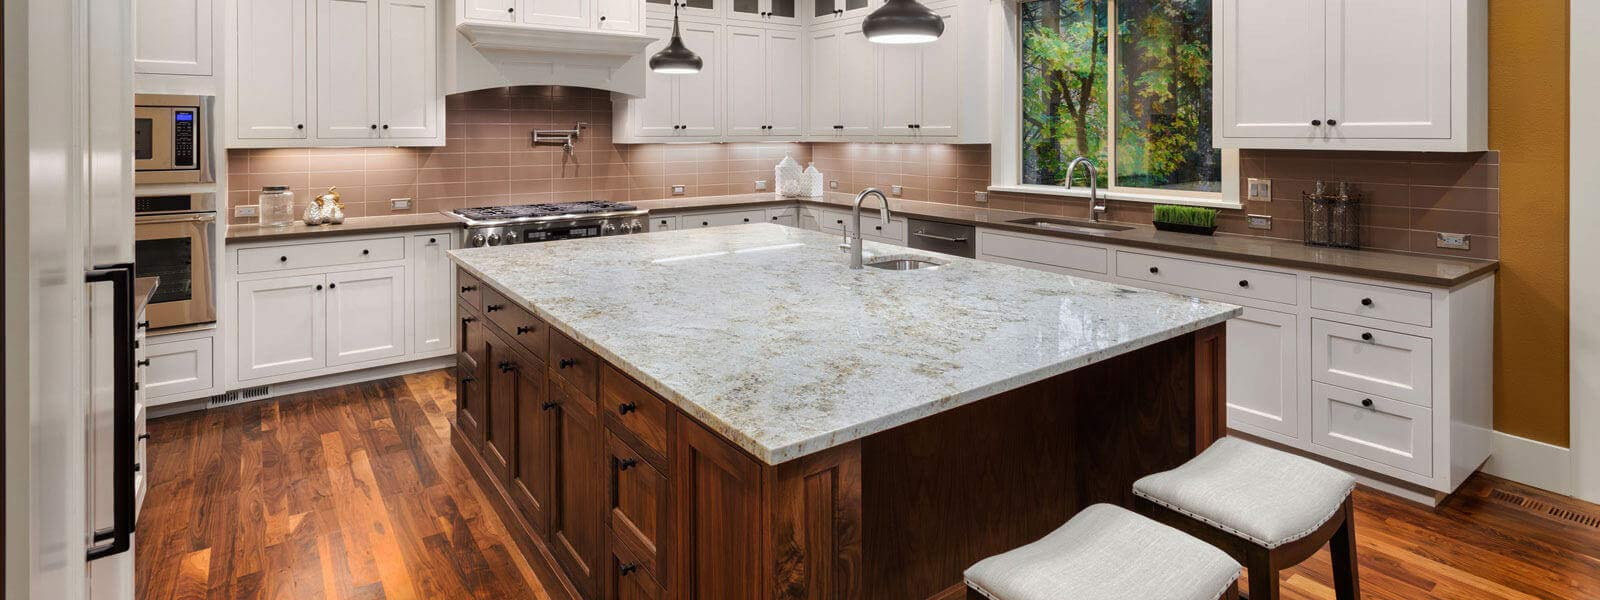 High Quality Granite Countertops Installer Company In Plano, TX!